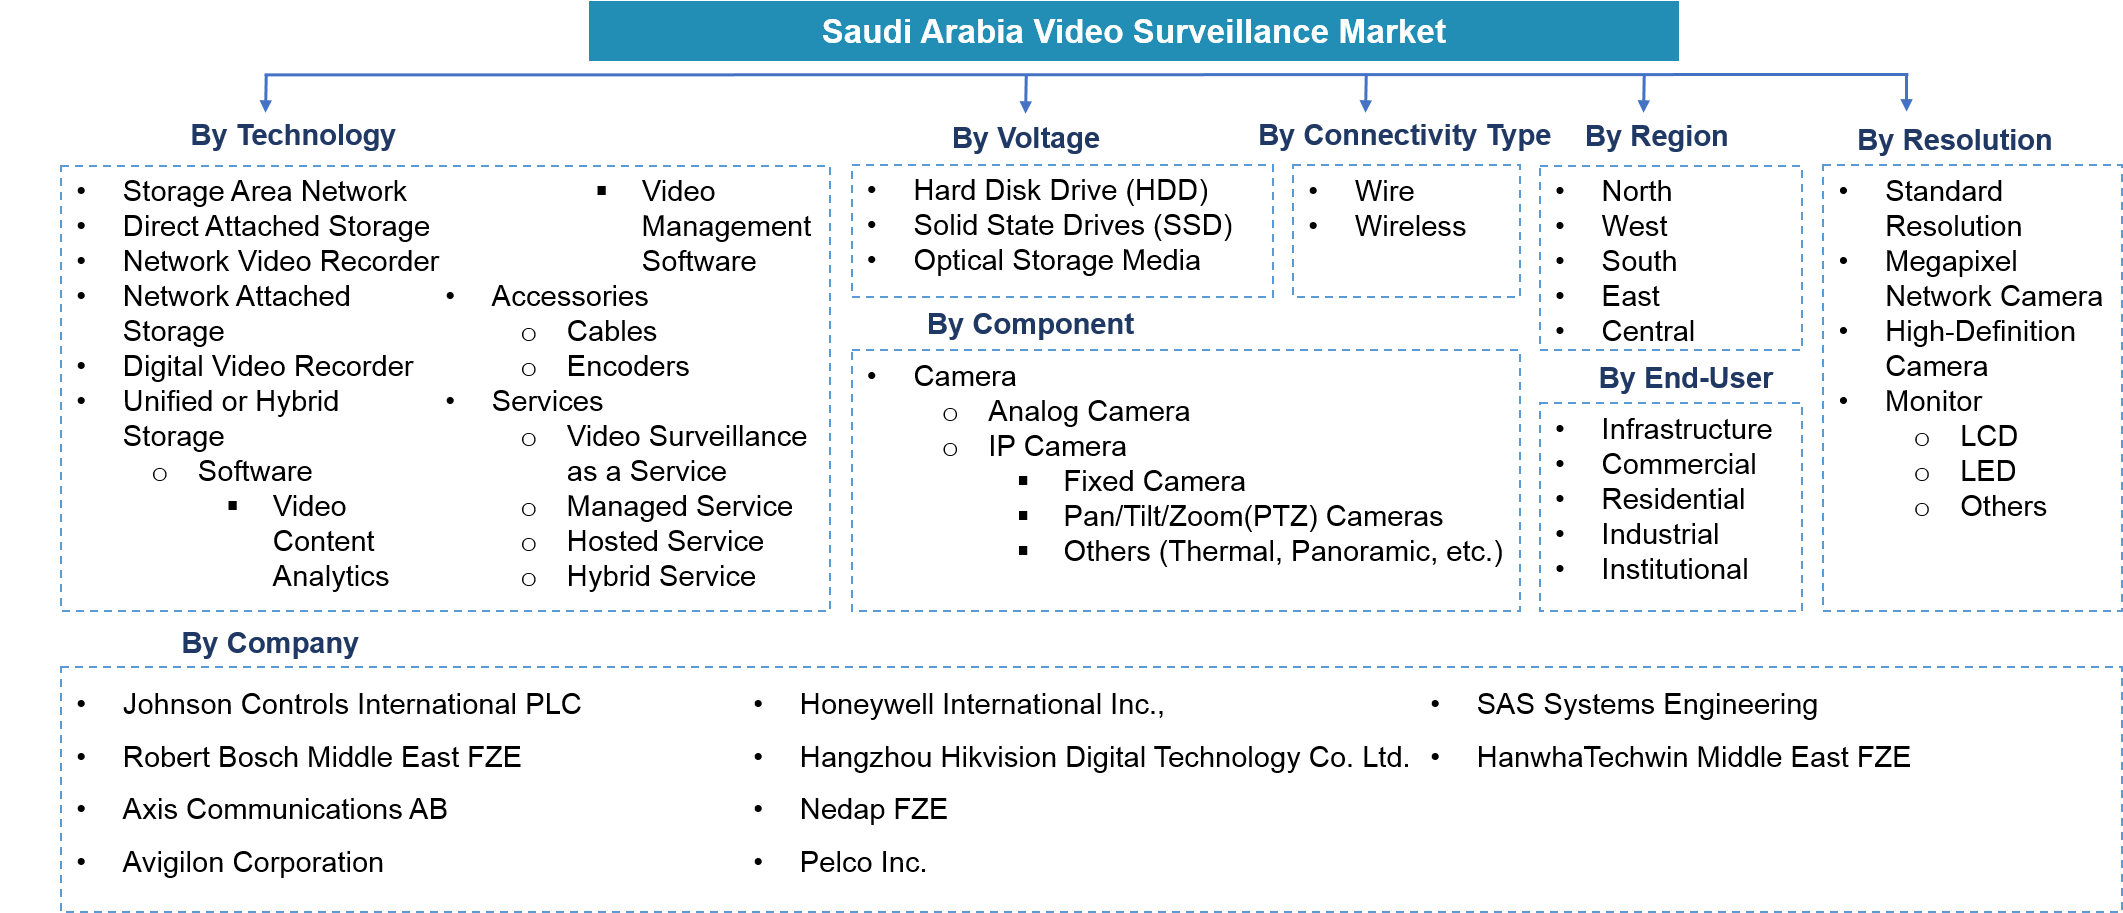 Saudi Arabia Video Surveillance Market Segmentation